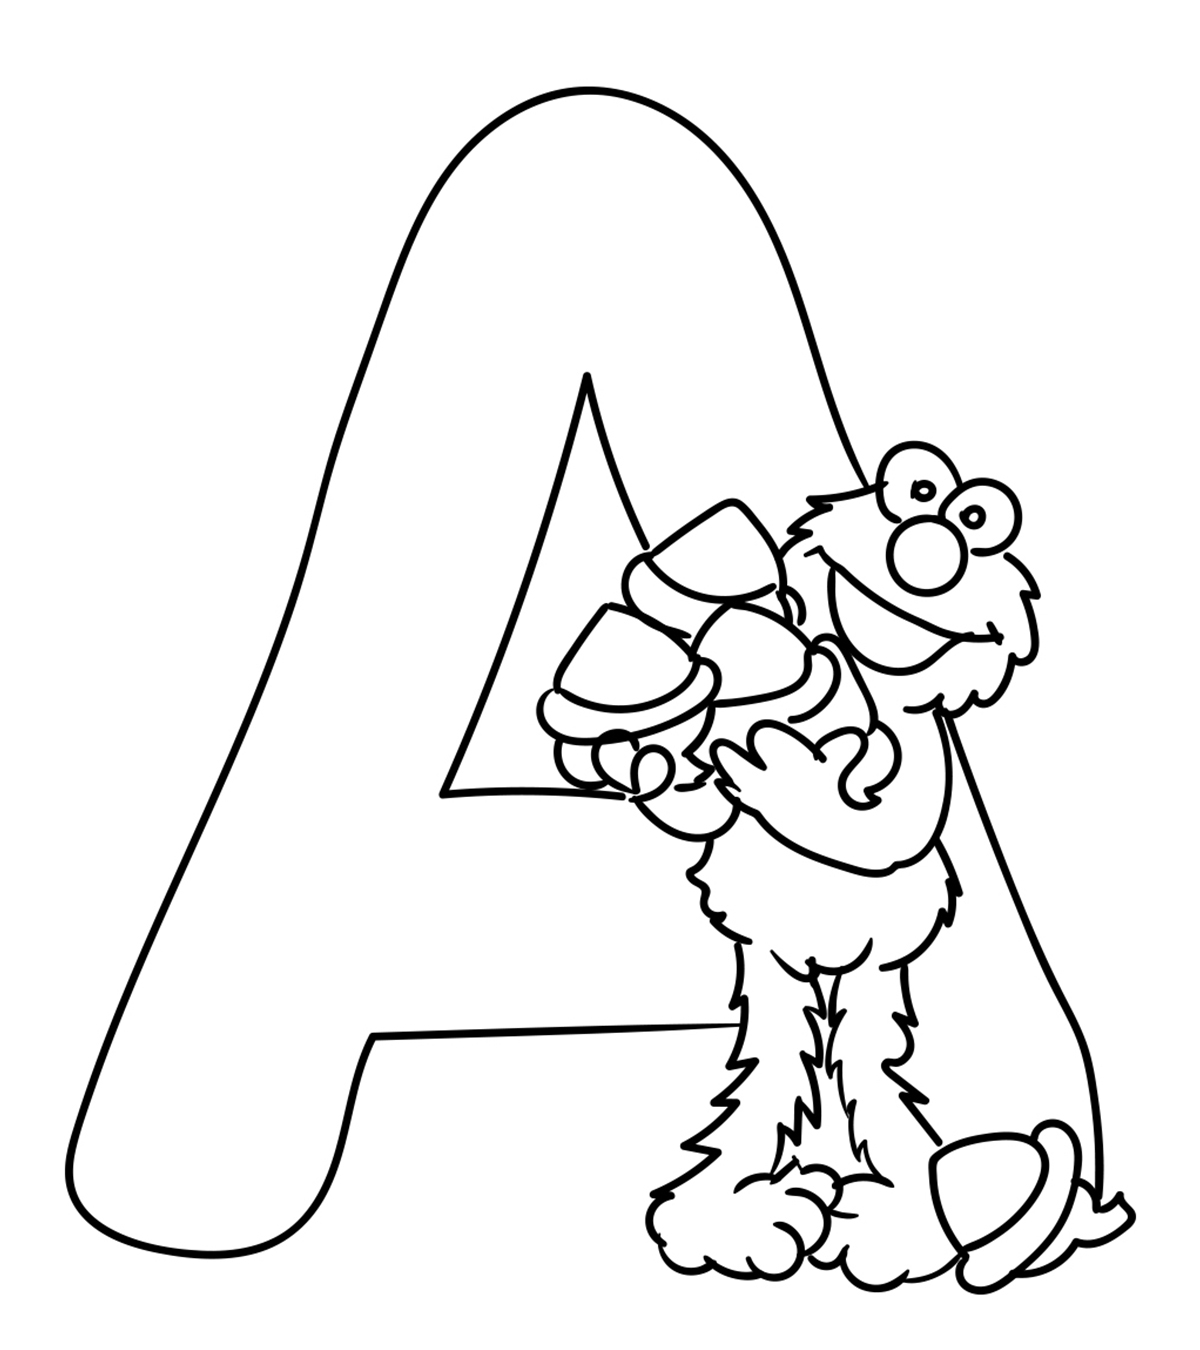 Farm Animal Colouring Pages for Kids | 1350x1200